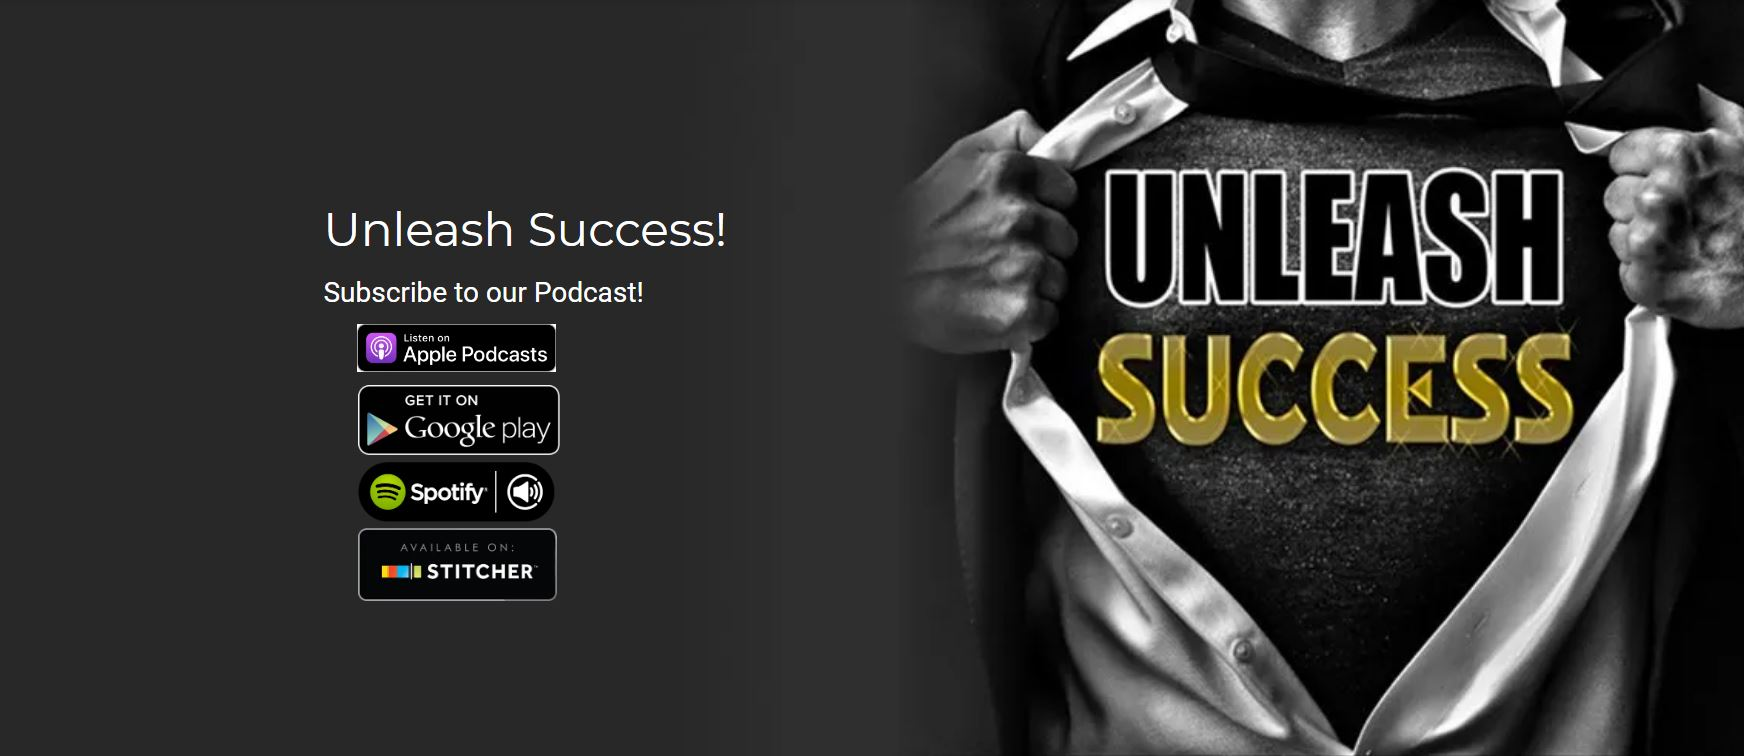 unleashed-success-podcast.jpg